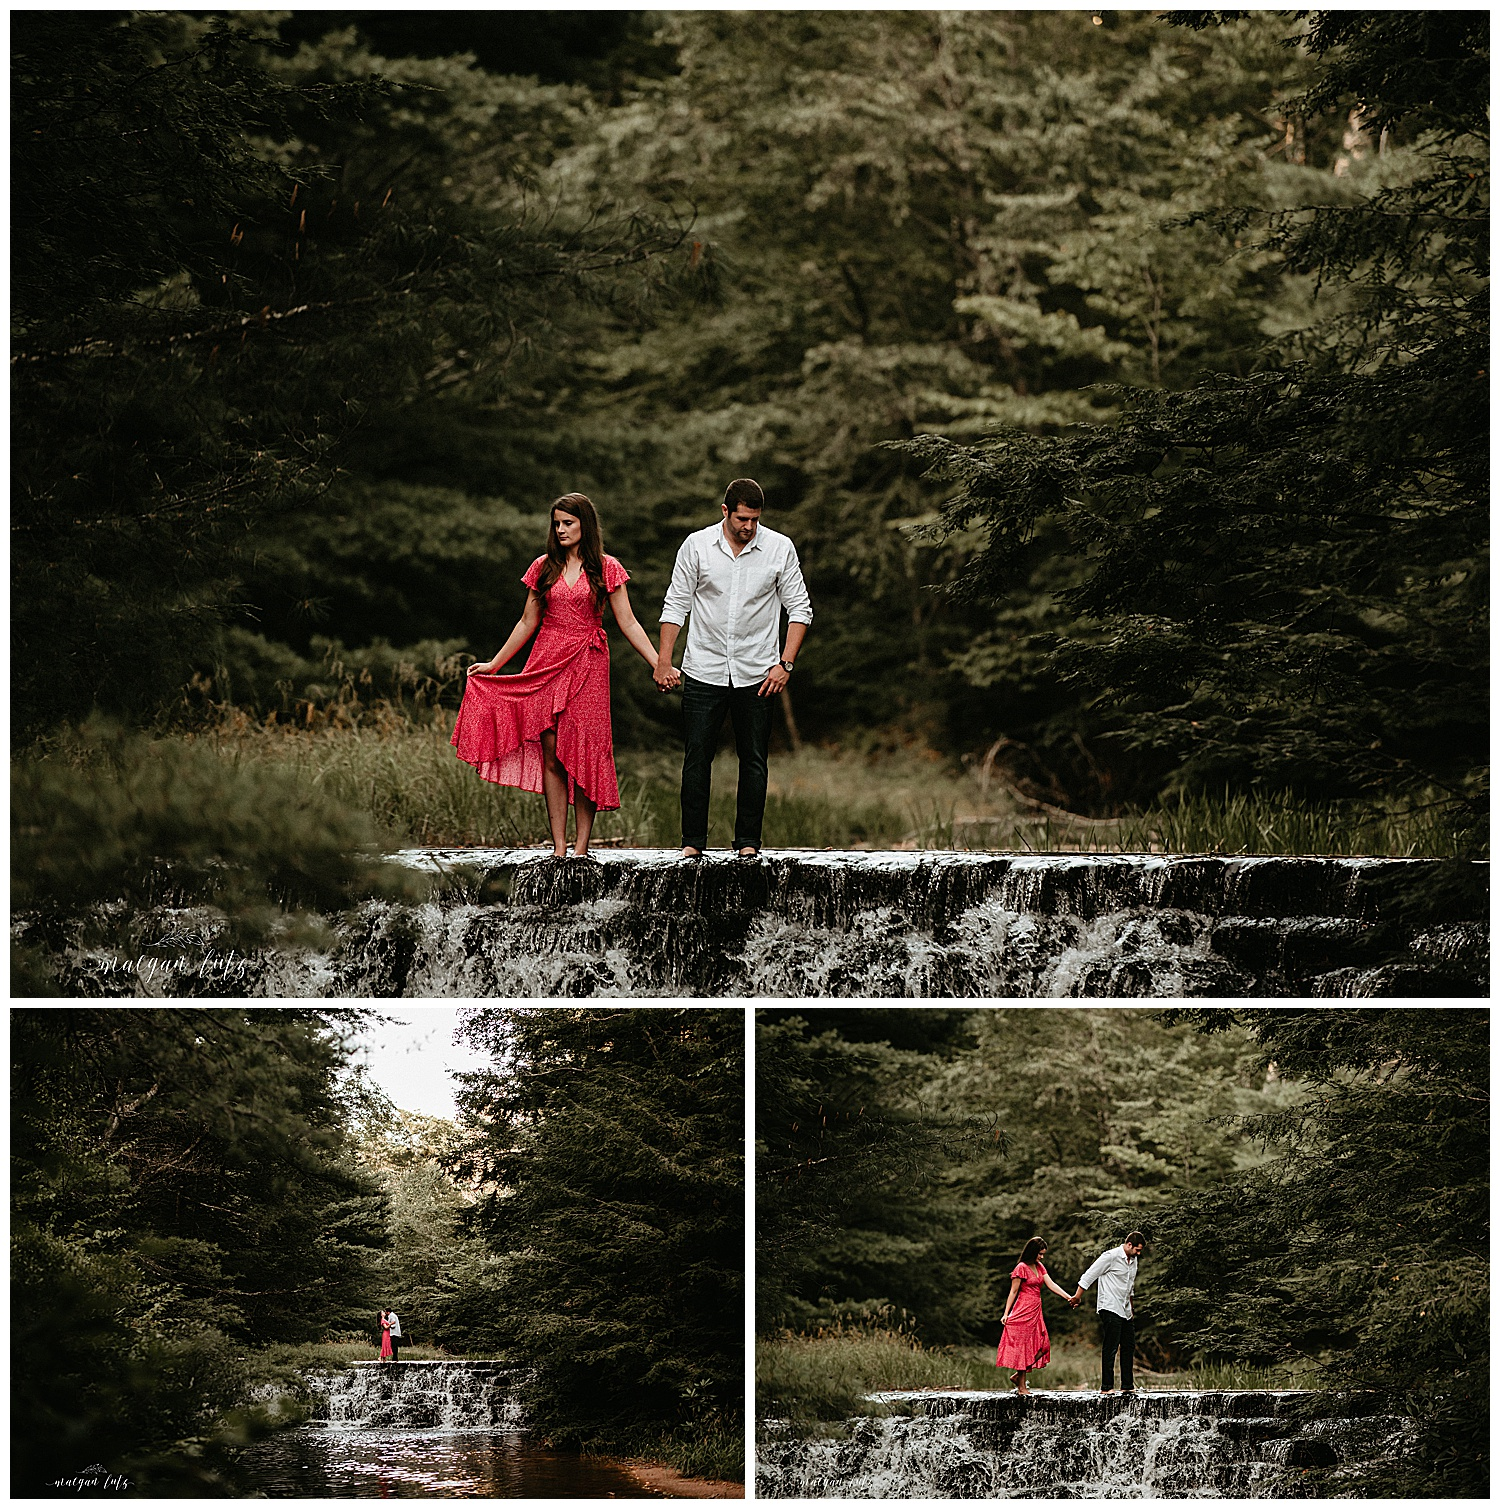 NEPA-Mount-Pocono-Lehigh-Valley-Wedding-Engagement-photographer-at-Hickory-Run-State-Park-Whitehaven-PA_0008.jpg